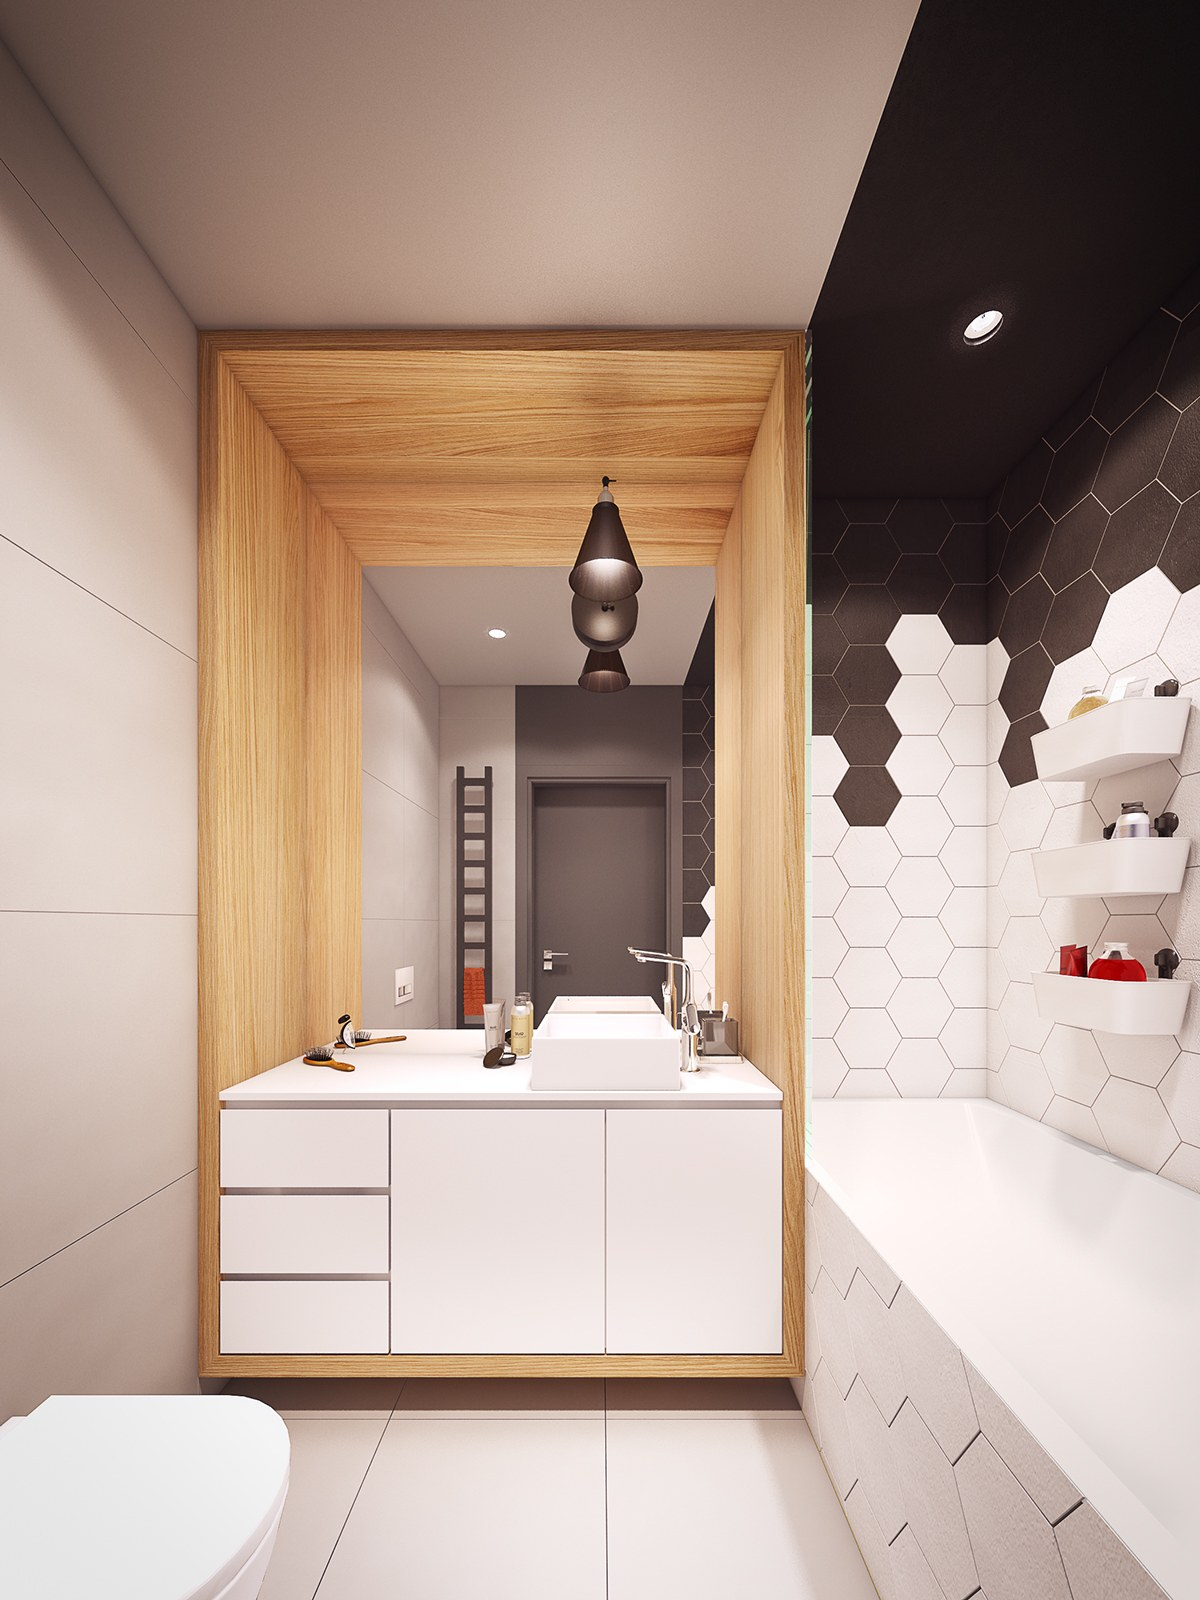 White Bath - A seductive home with lush colors and double baths